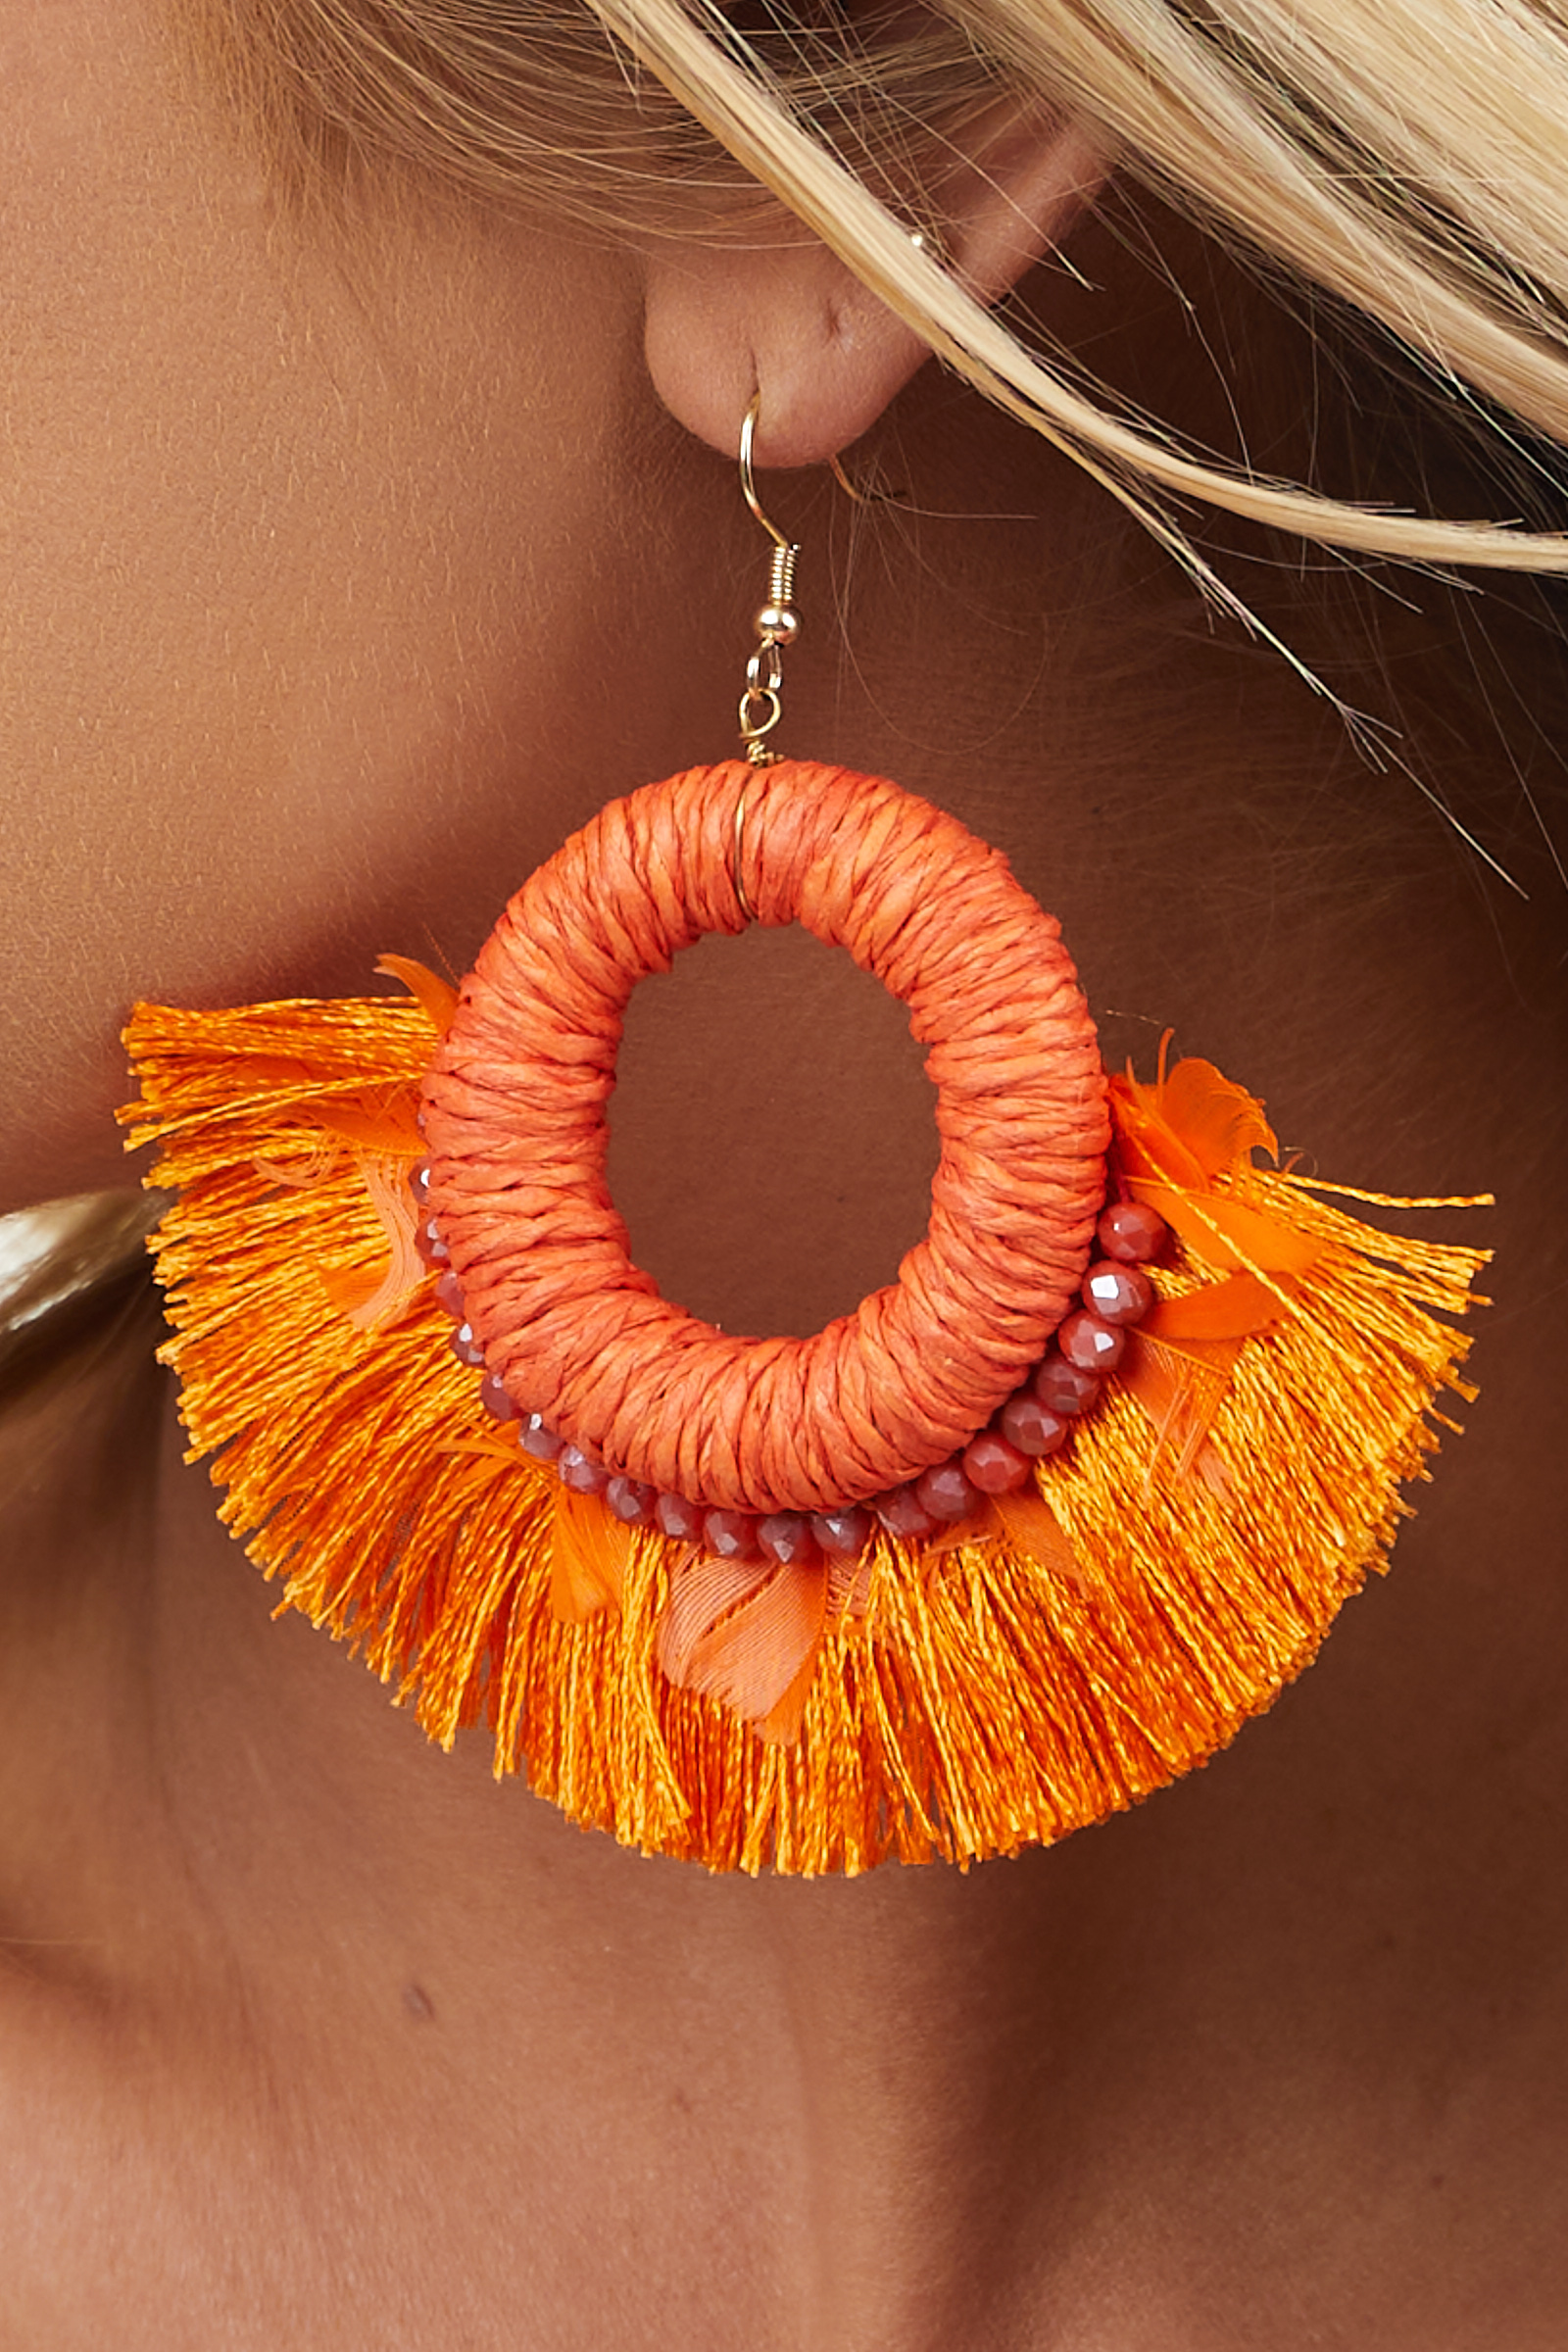 Bright Orange Hoop Earrings with Bead and Feather Details